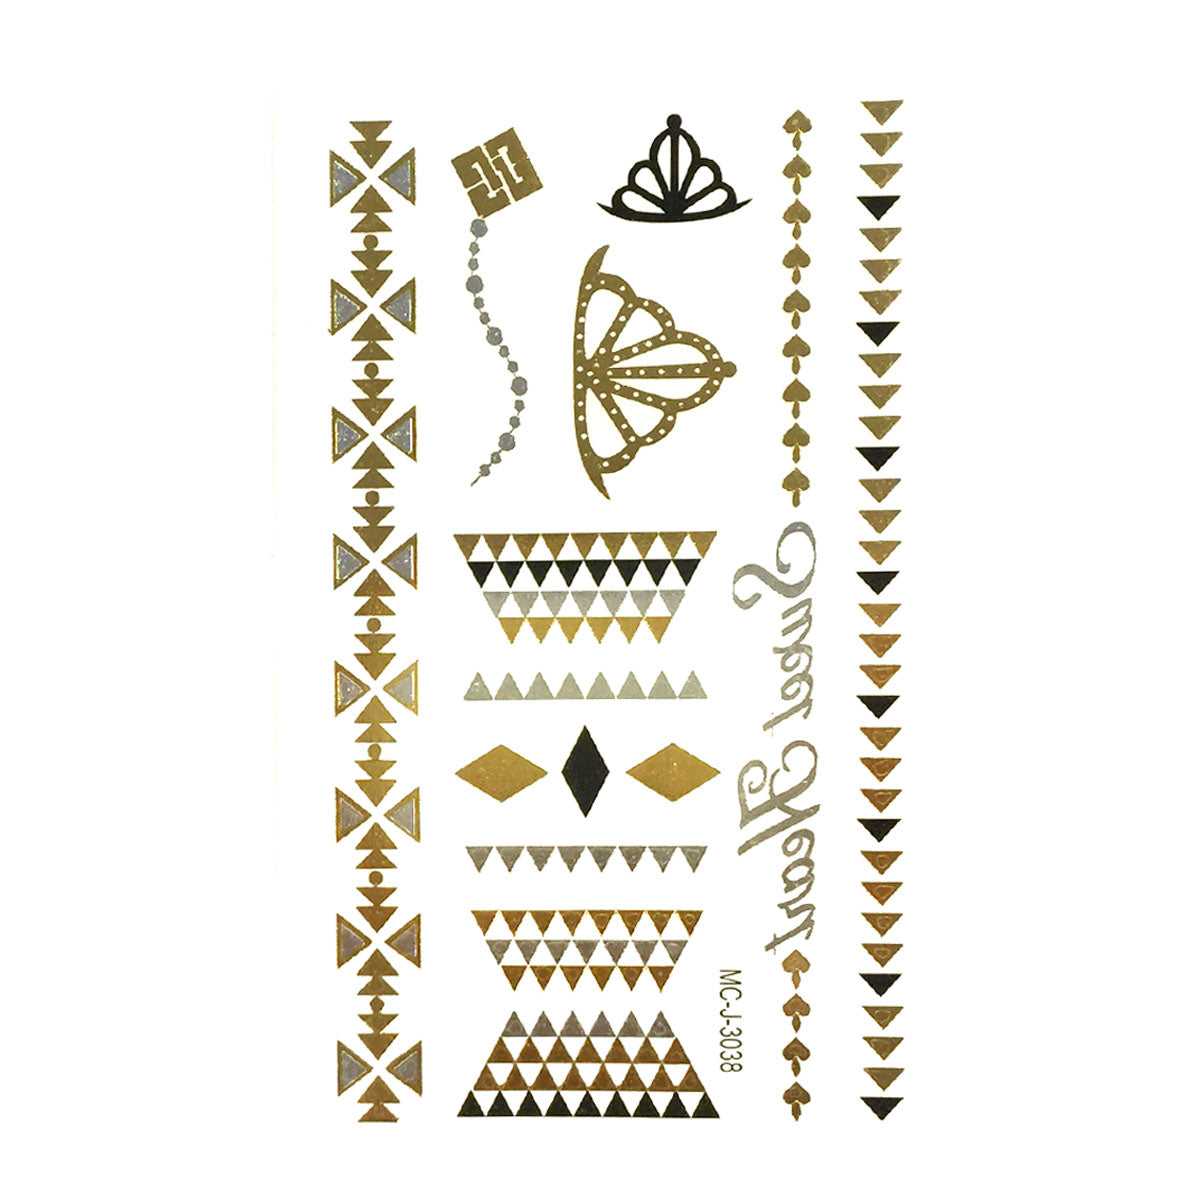 Wrapables Small Metallic Gold and Silver Temporary Tattoo Stickers